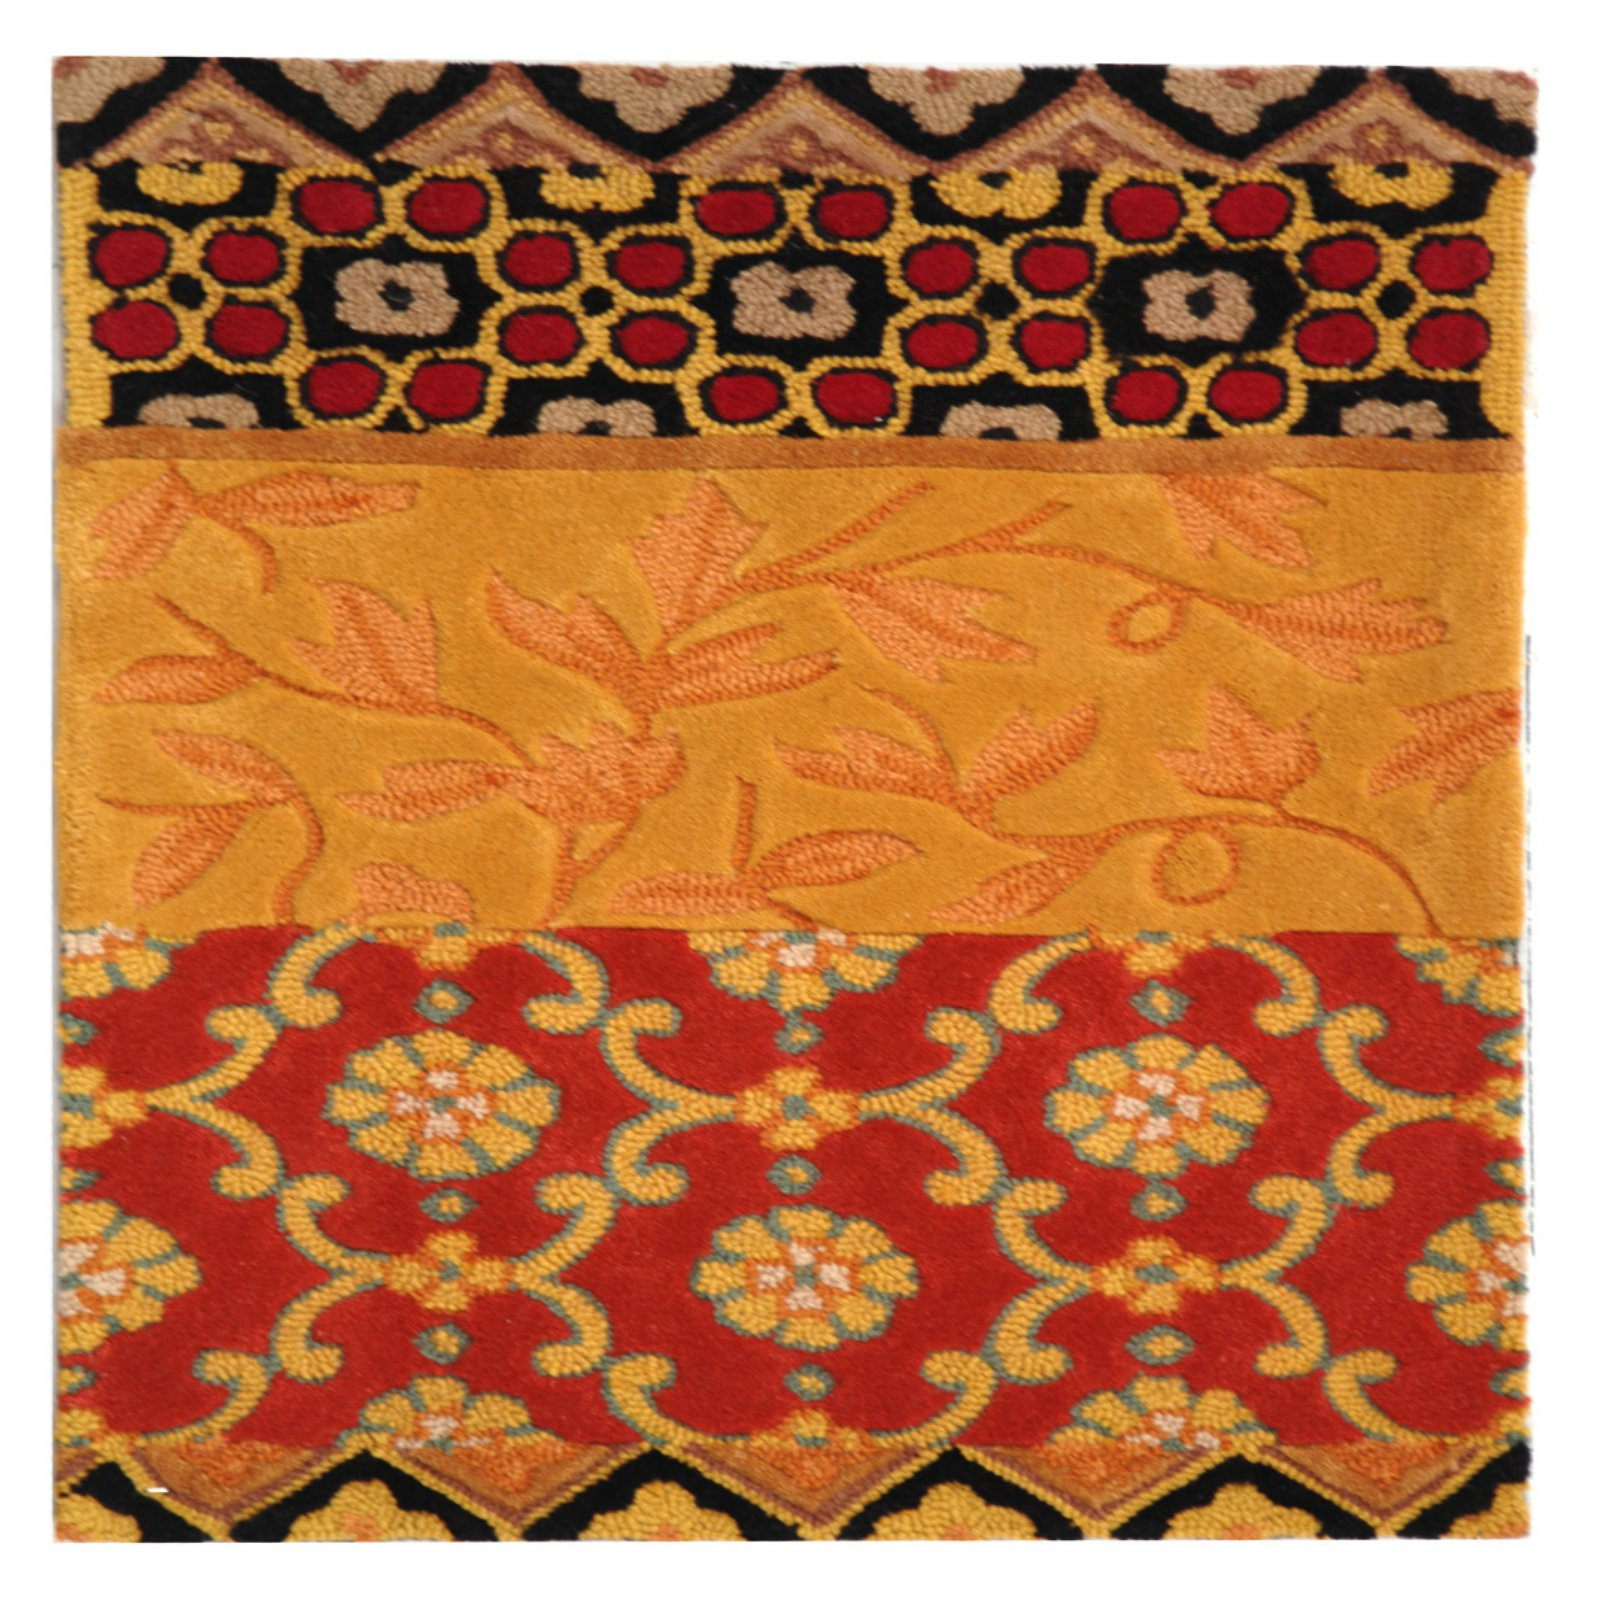 Safavieh Rodeo Drive Terrence Hand-Tufted Wool Runner Rug, Rust/Gold